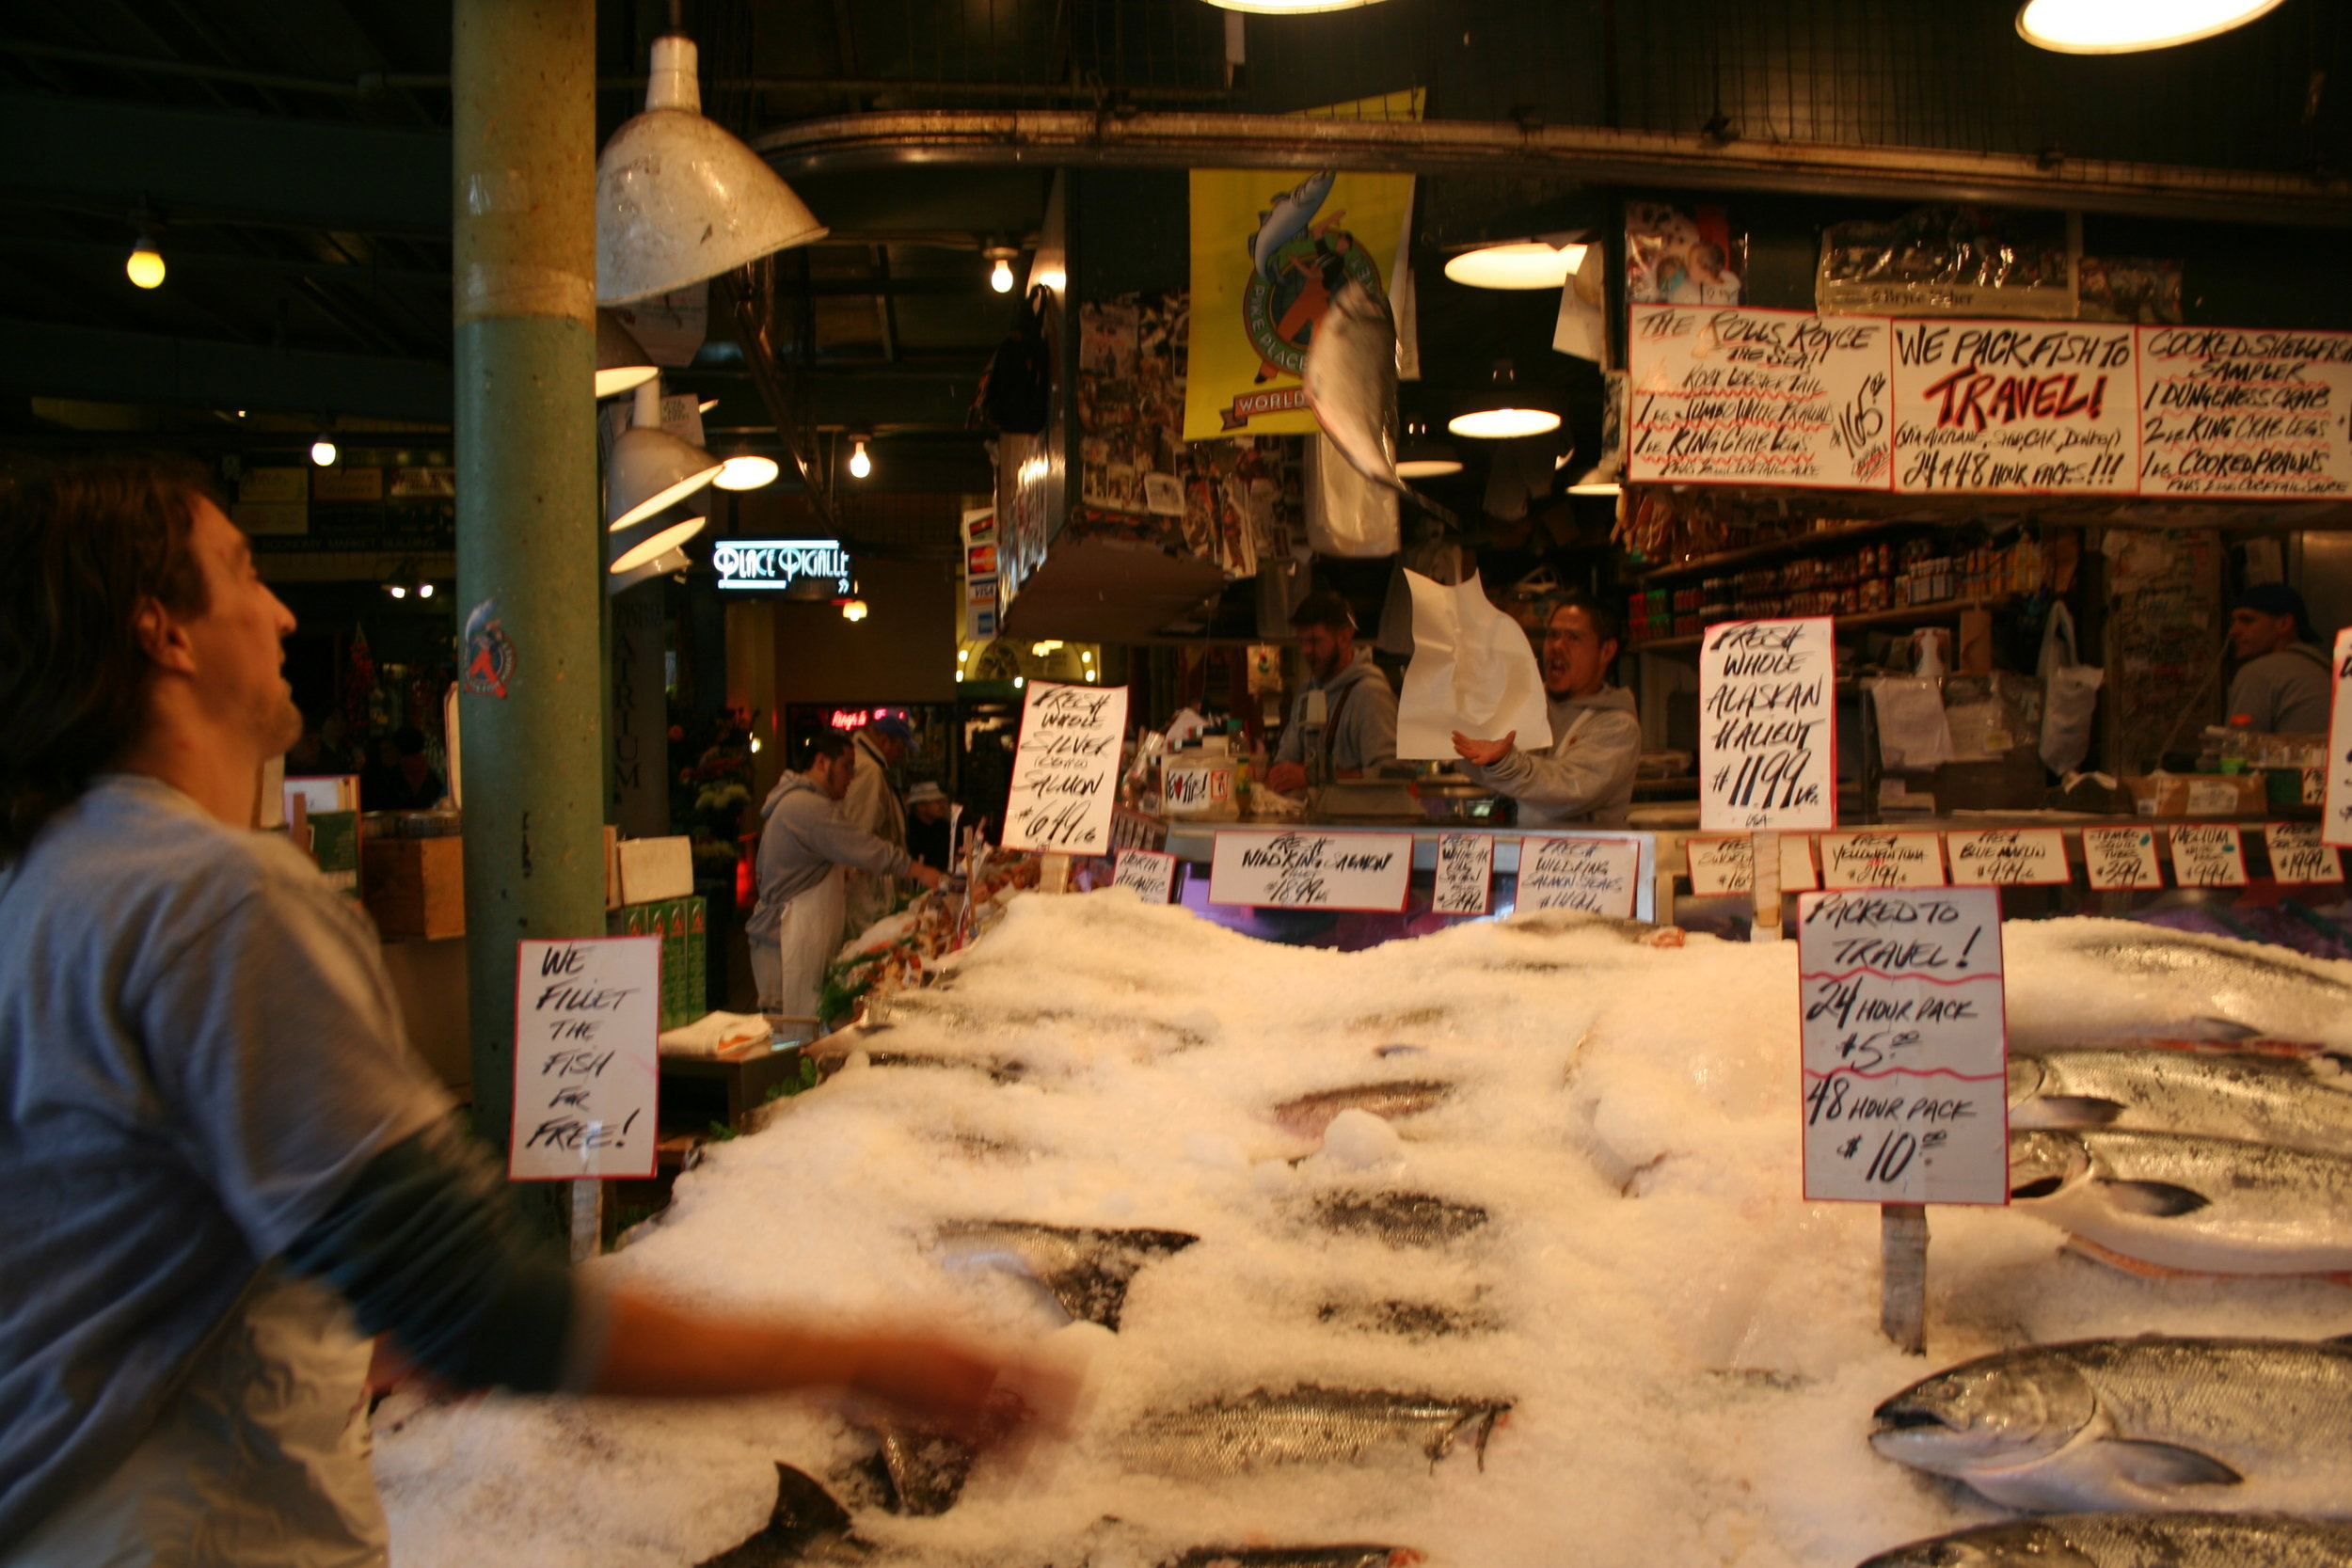 Pike_Place_Fish_5.jpg